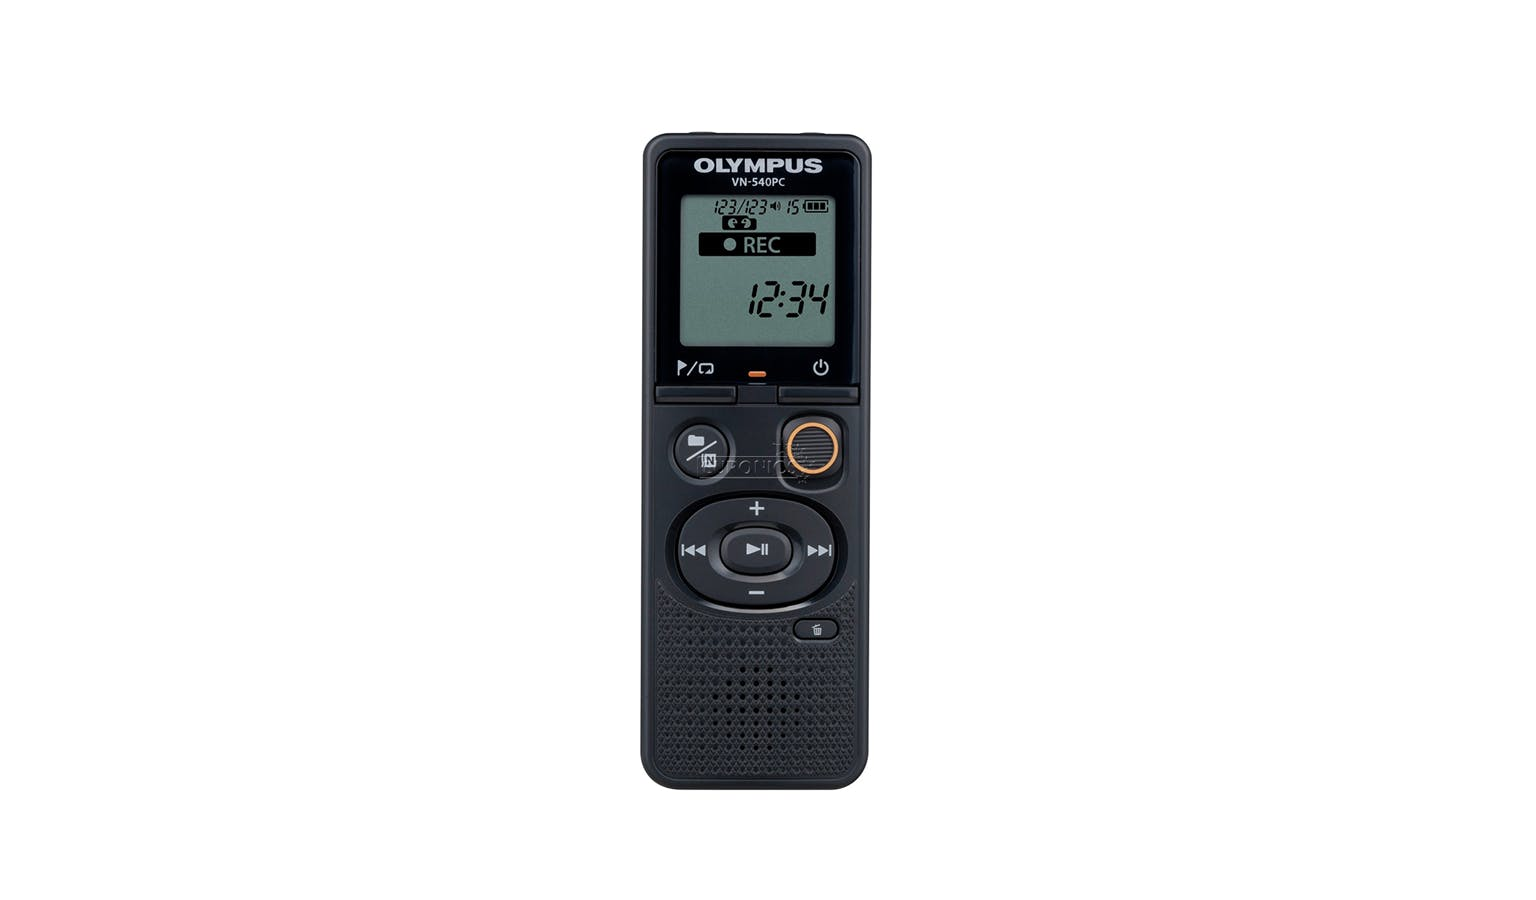 Olympus Vn 540pc Voice Recorder Harvey Norman Malaysia